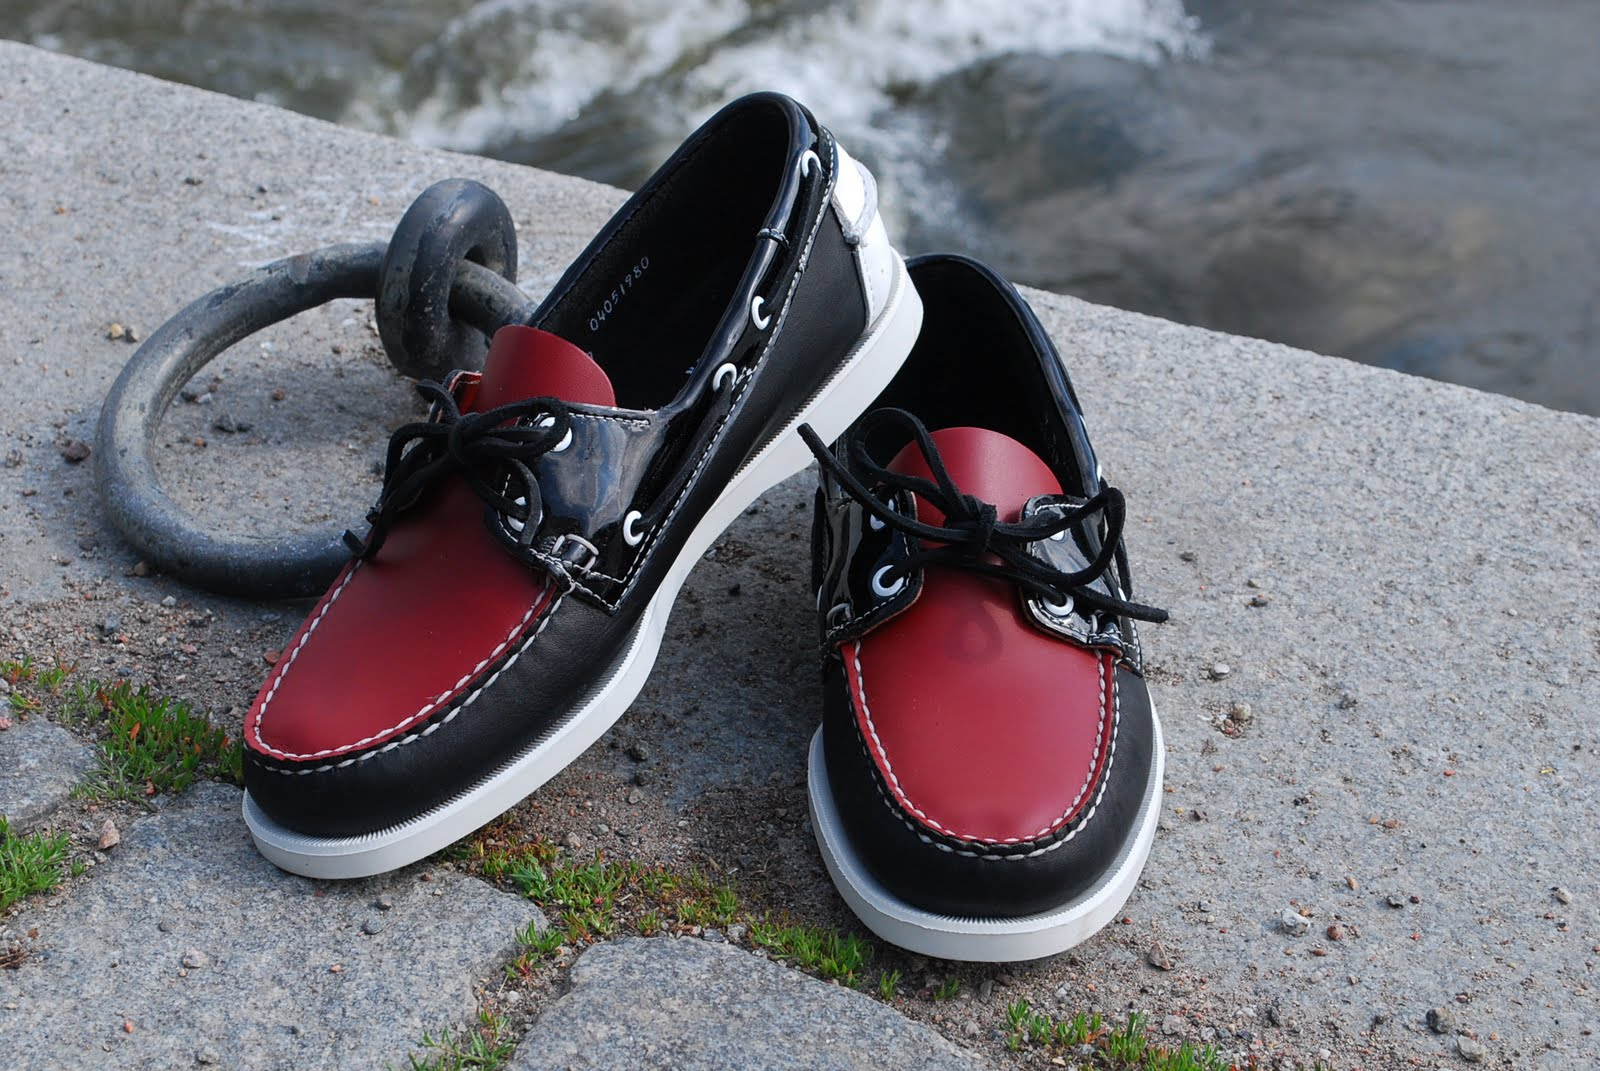 1d8e30e7 In light of their 40th anniversary of their classic Docksides deck shoe,  Sebago has released 3 very limited colorways of the Docksides.